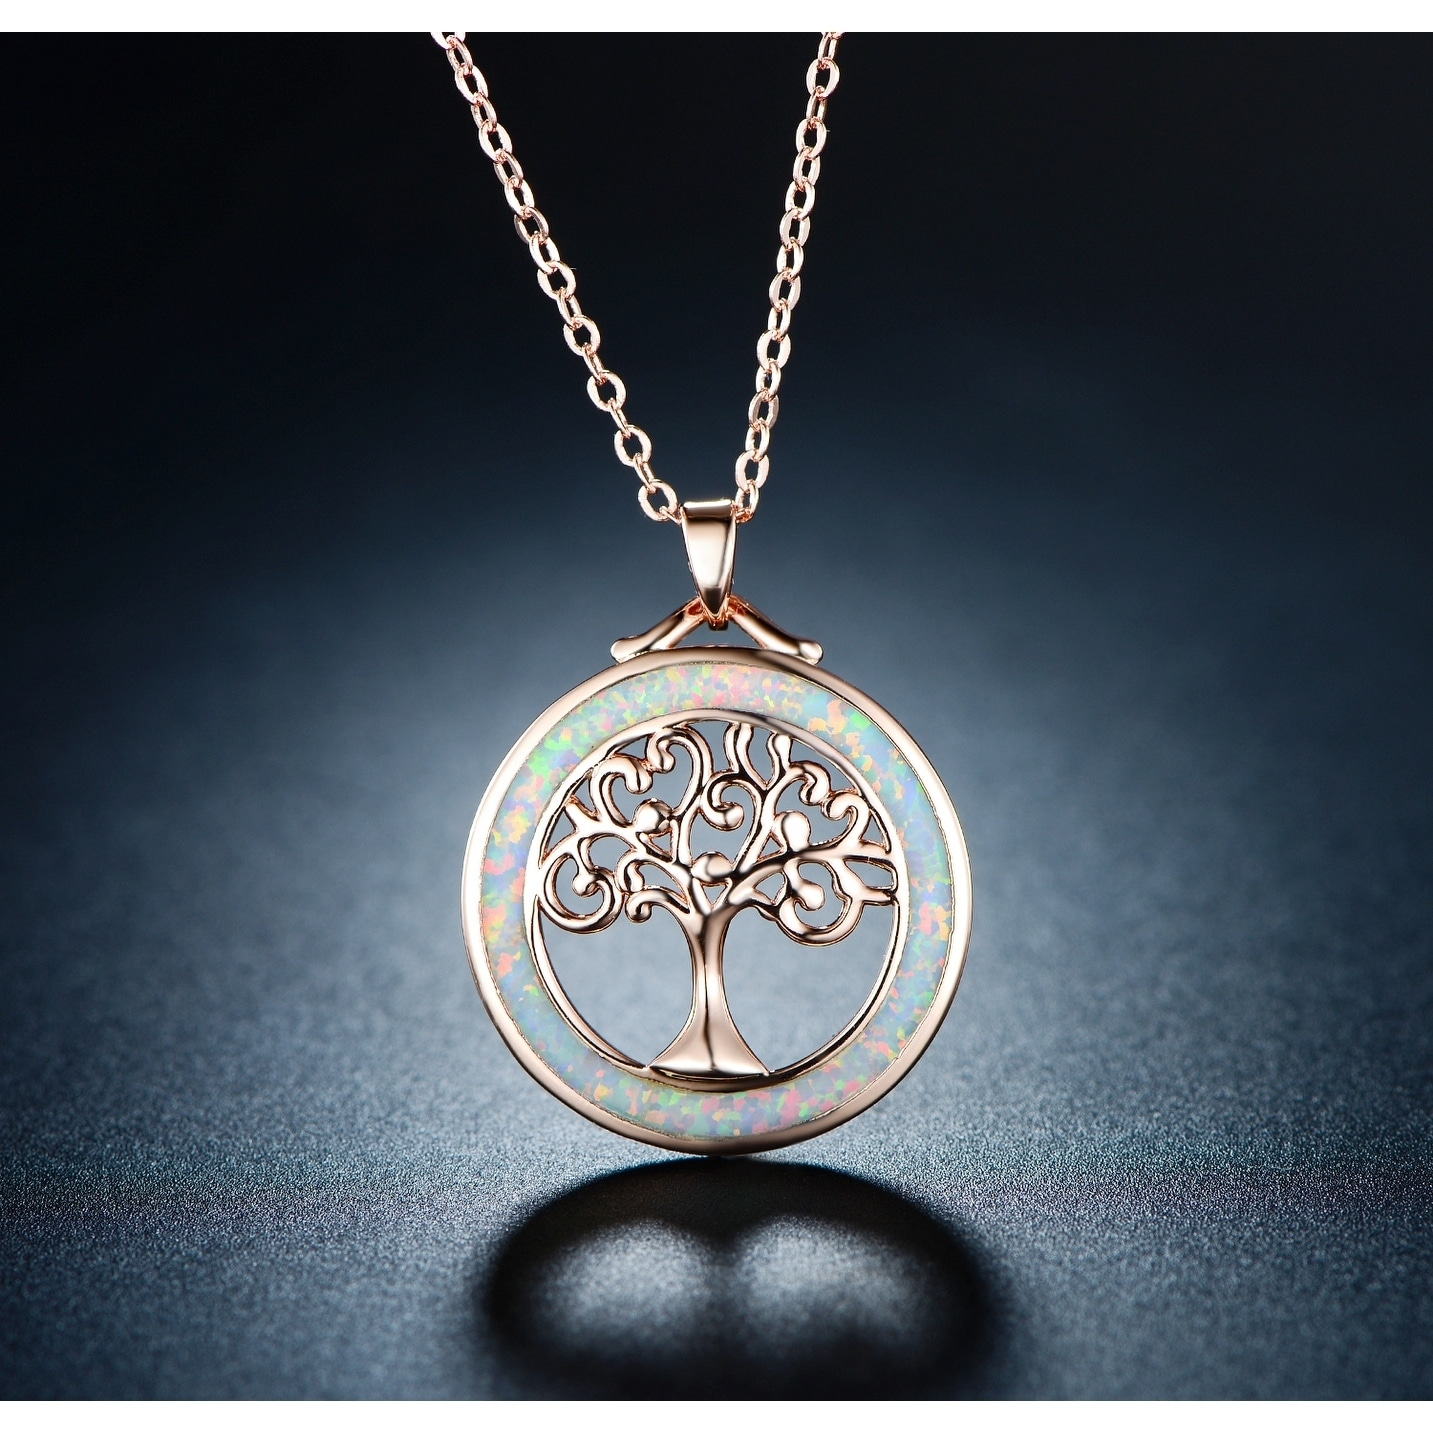 1a6bf31565cb8e Shop Rose Gold Plated Fire Opal Tree Of Life Pendant Necklace - On Sale - Free  Shipping On Orders Over $45 - Overstock - 24224980